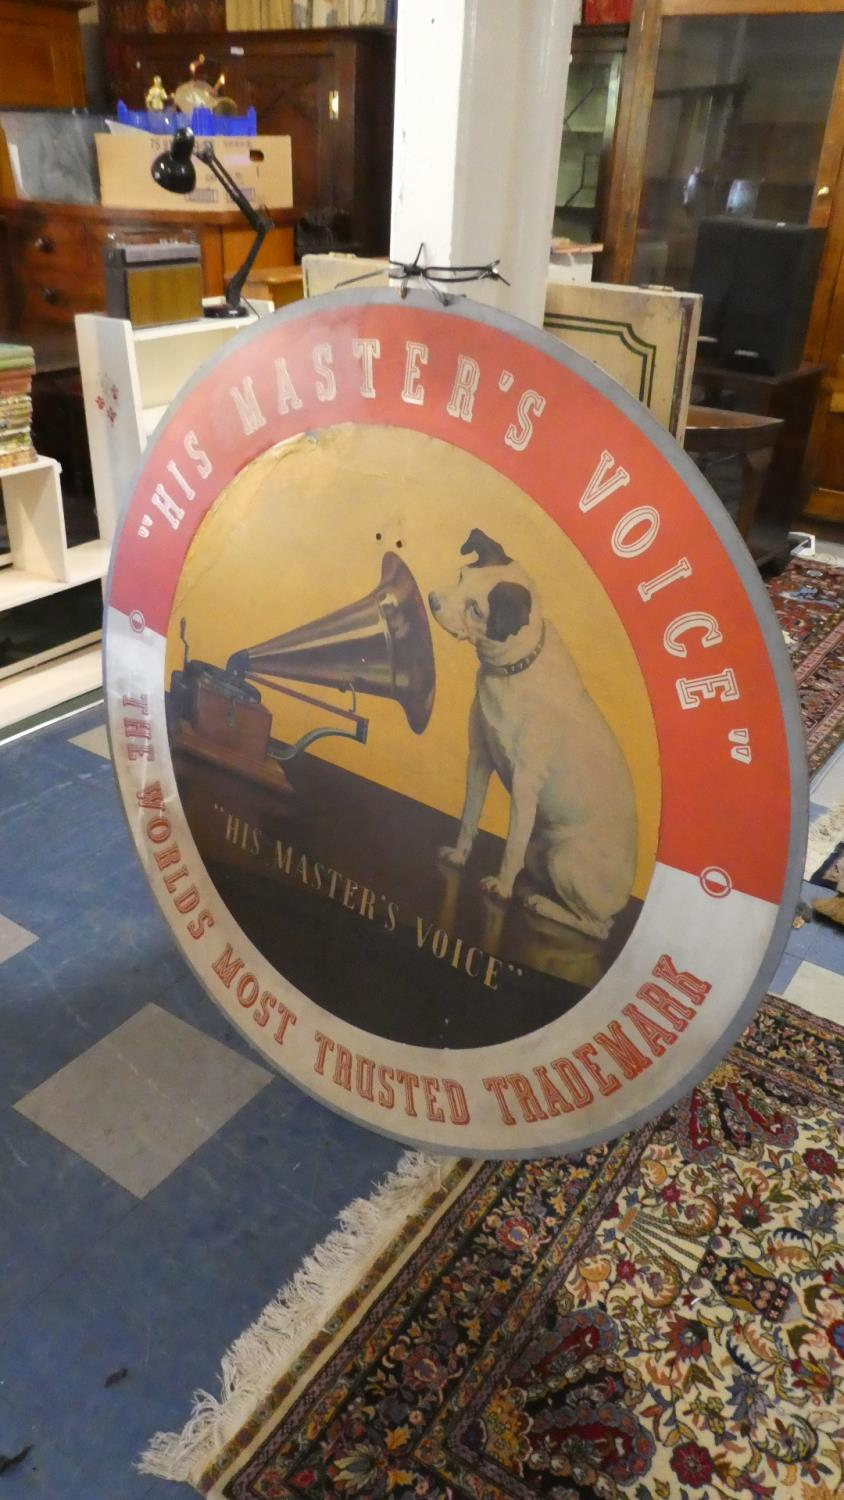 Lot 49 - A Large Mid 20th Century Circular Sign on Cardboard, His Master's Voice-The Worlds Most Trusted